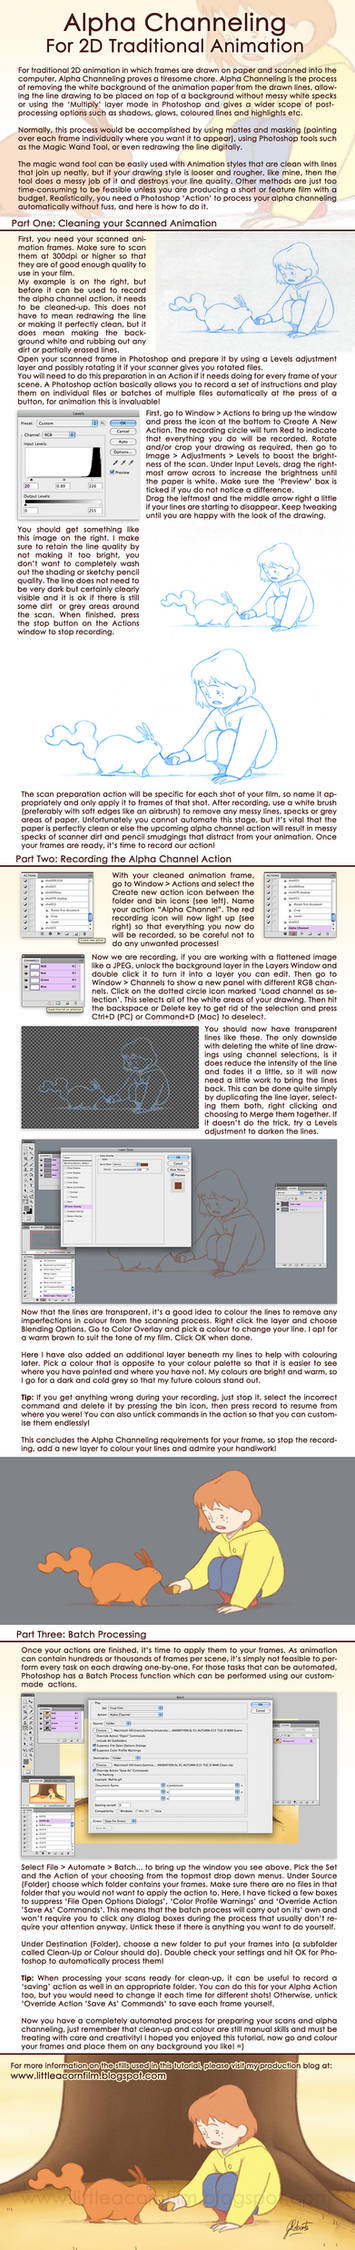 Alpha Channeling Tutorial for 2D Animation